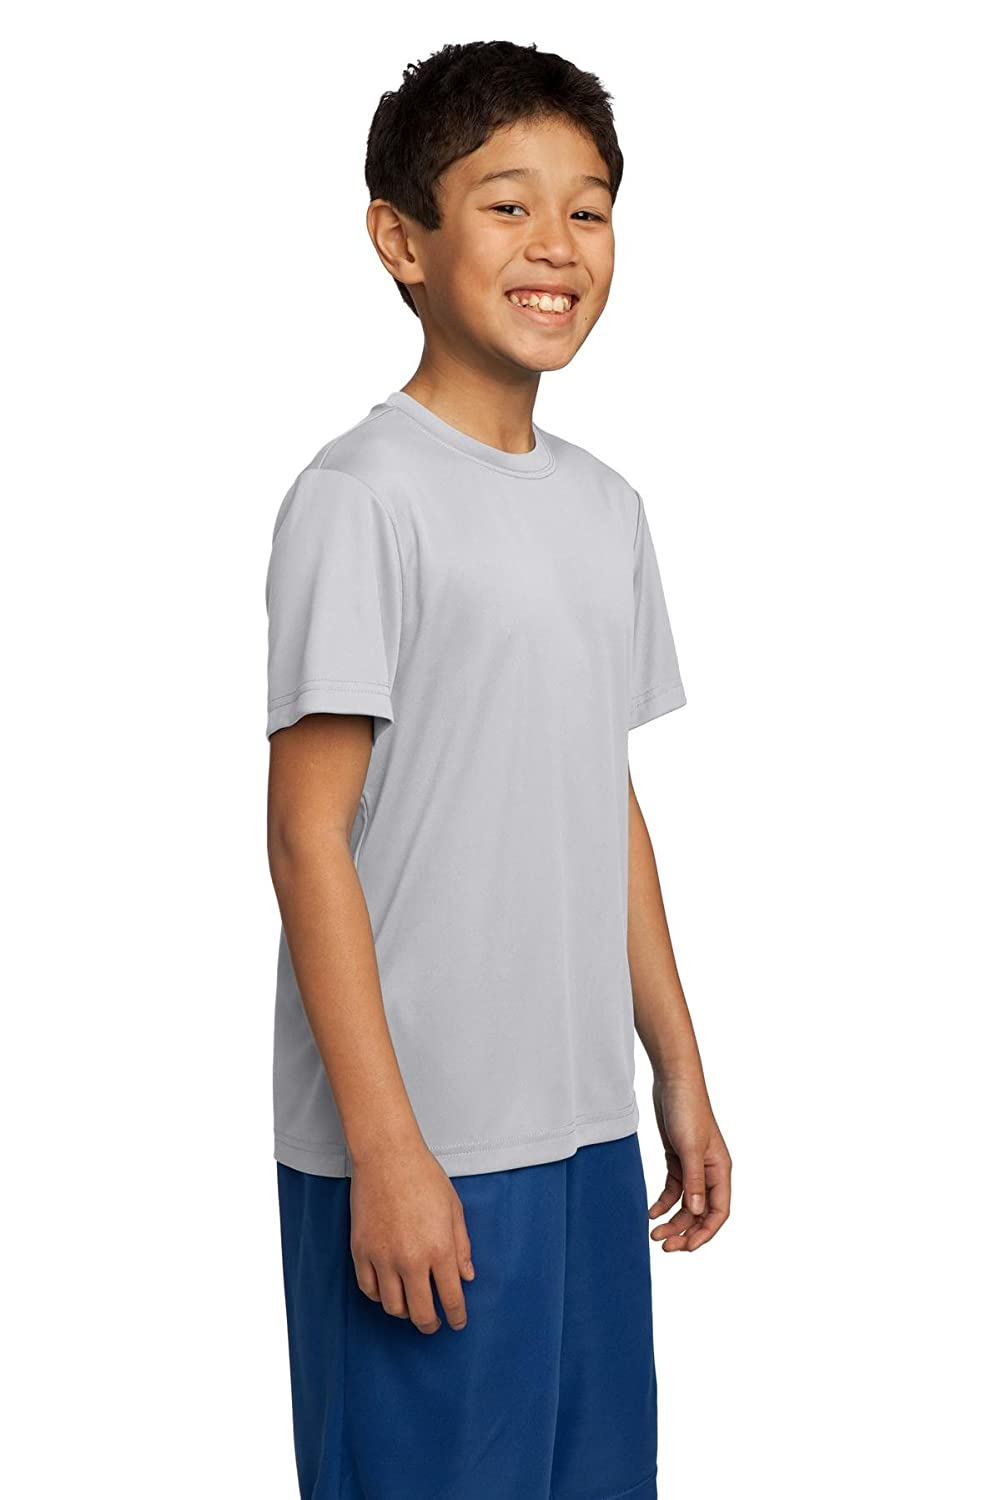 Sport-Tek Youth Comfort Lightweight Competitor T-Shirt/_White/_Large